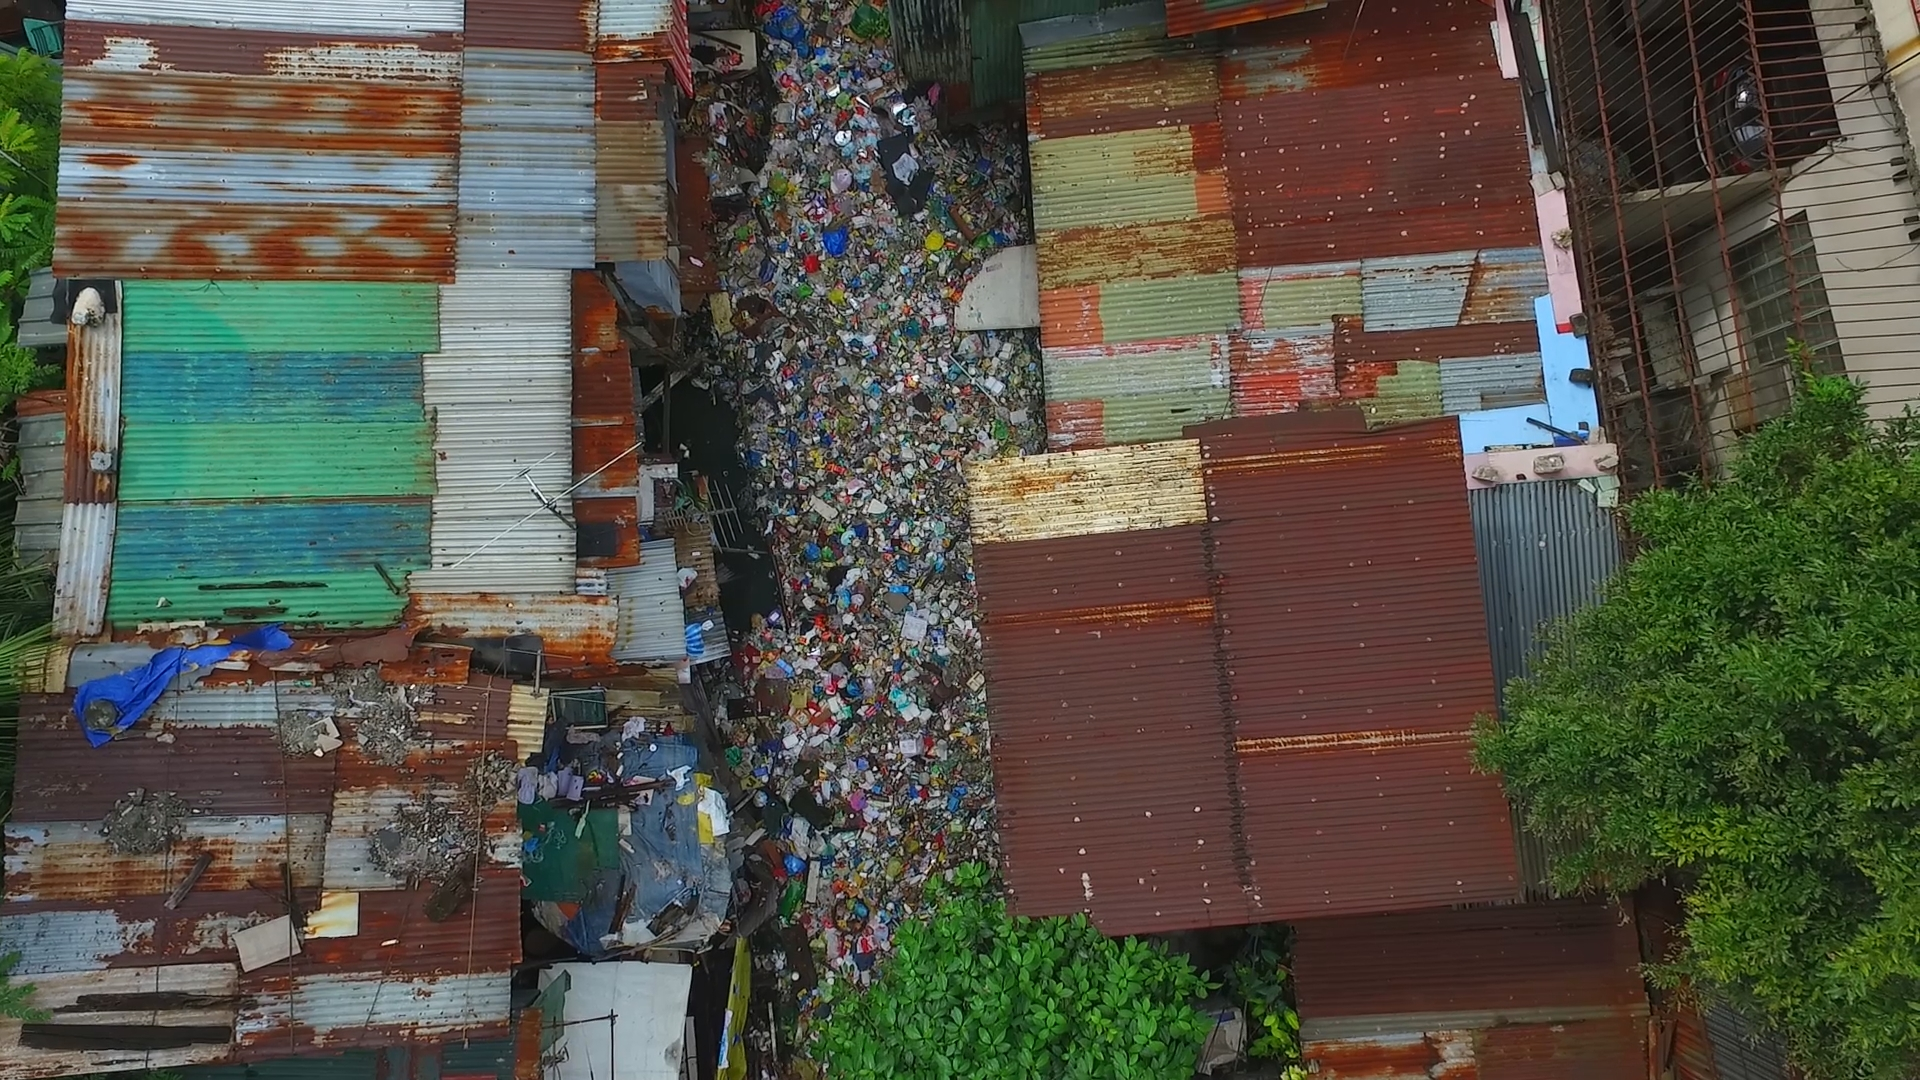 garbage completely filling a river in panama.